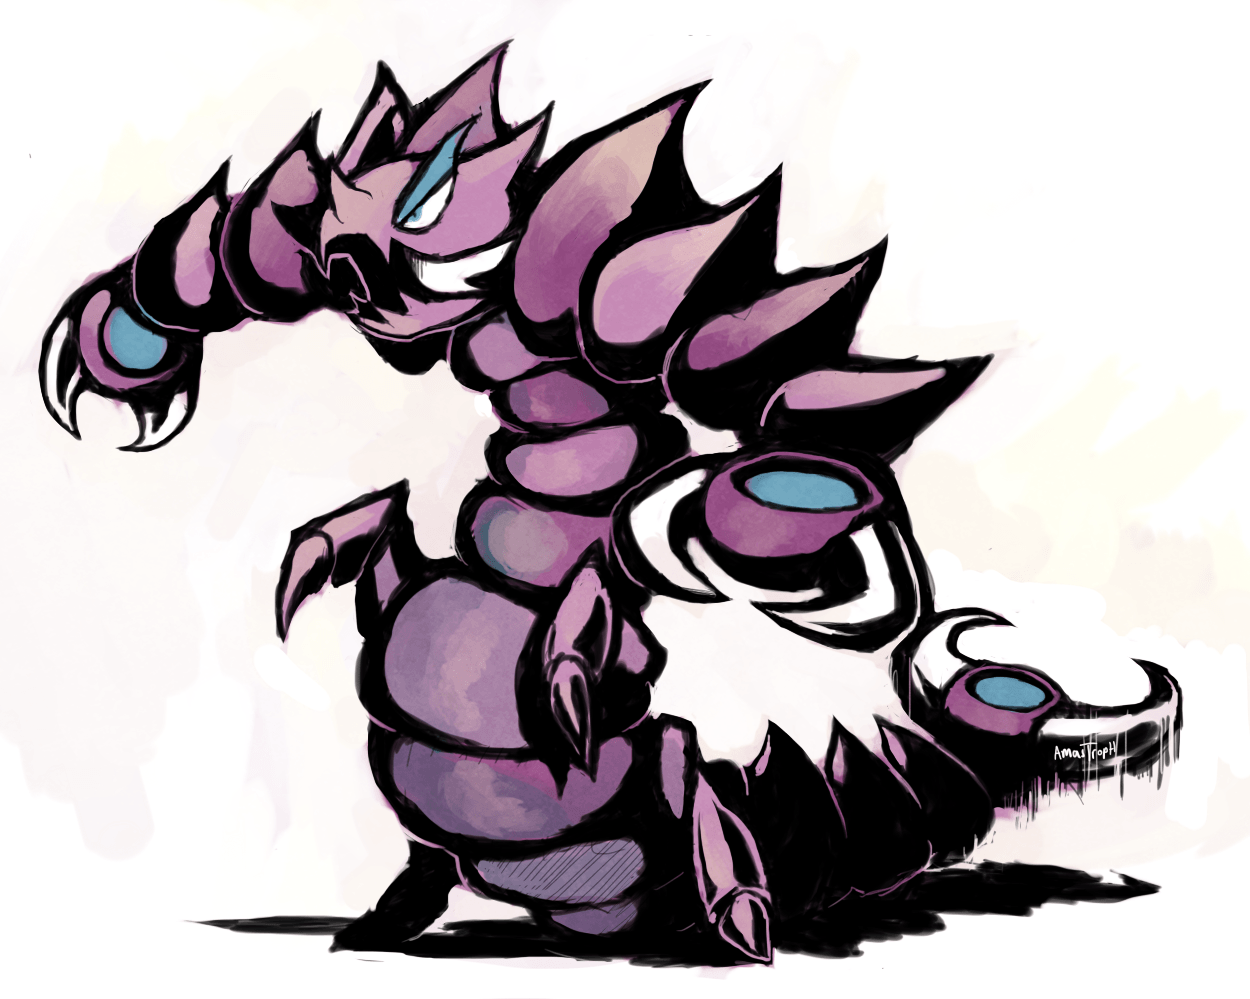 Pokedex XY challenge: Drapion by Amastroph on DeviantArt | Every ...